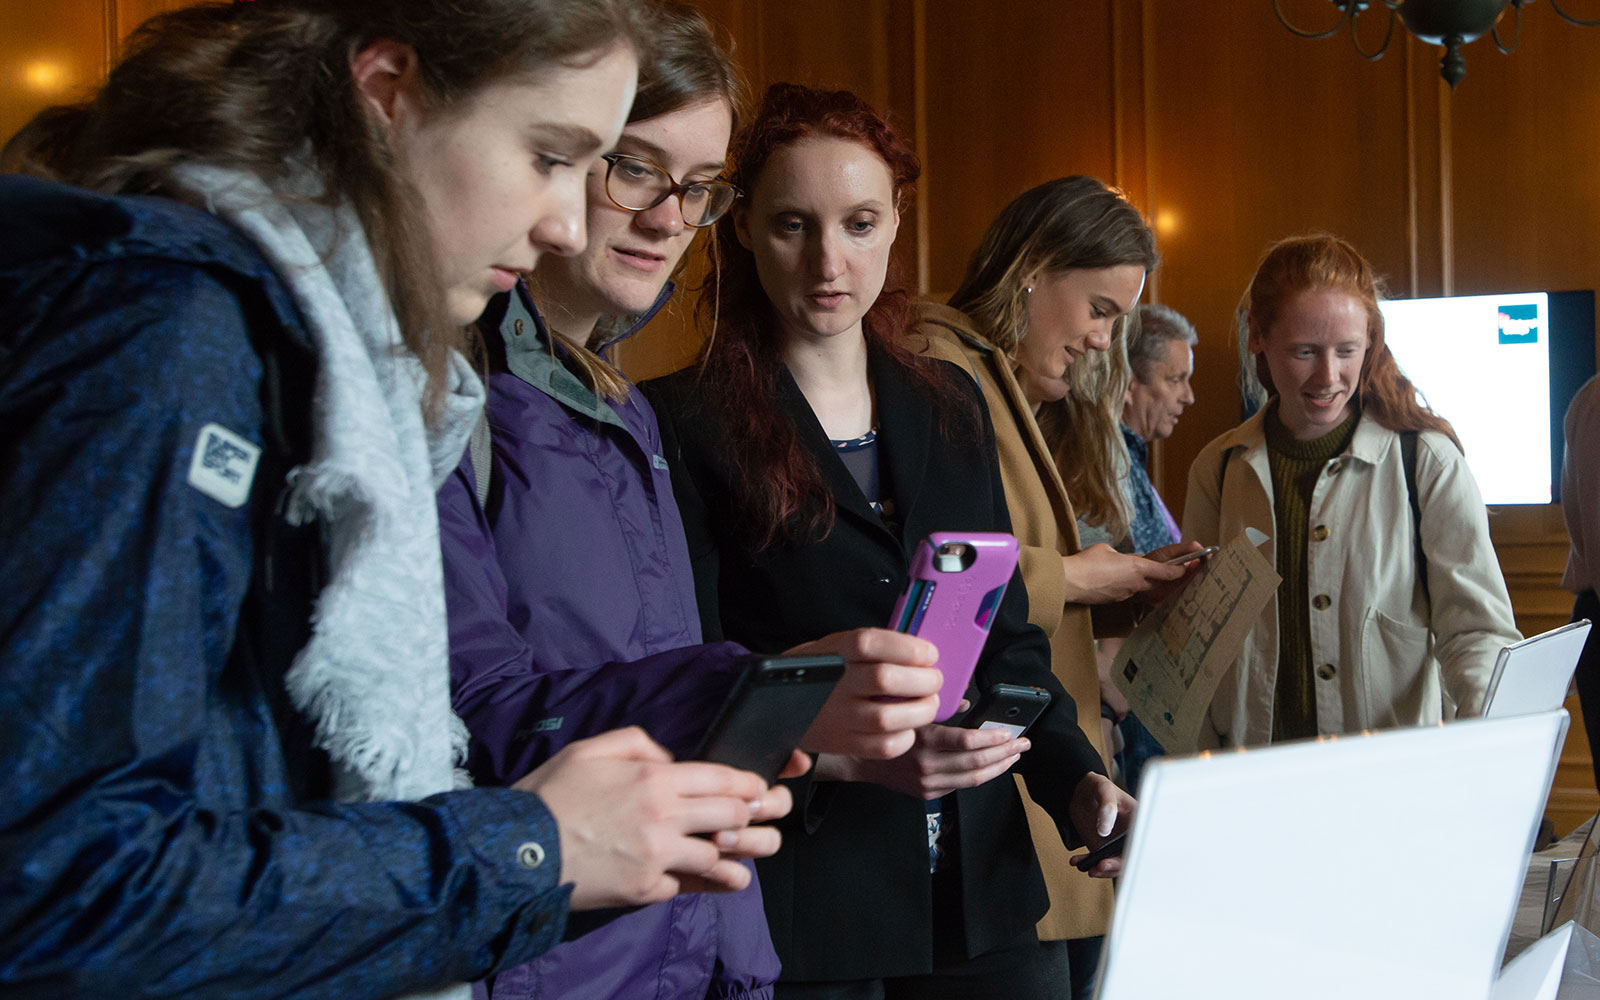 A group of visitors using their mobile phones to engage with augmented reality features at an interactive exhibition